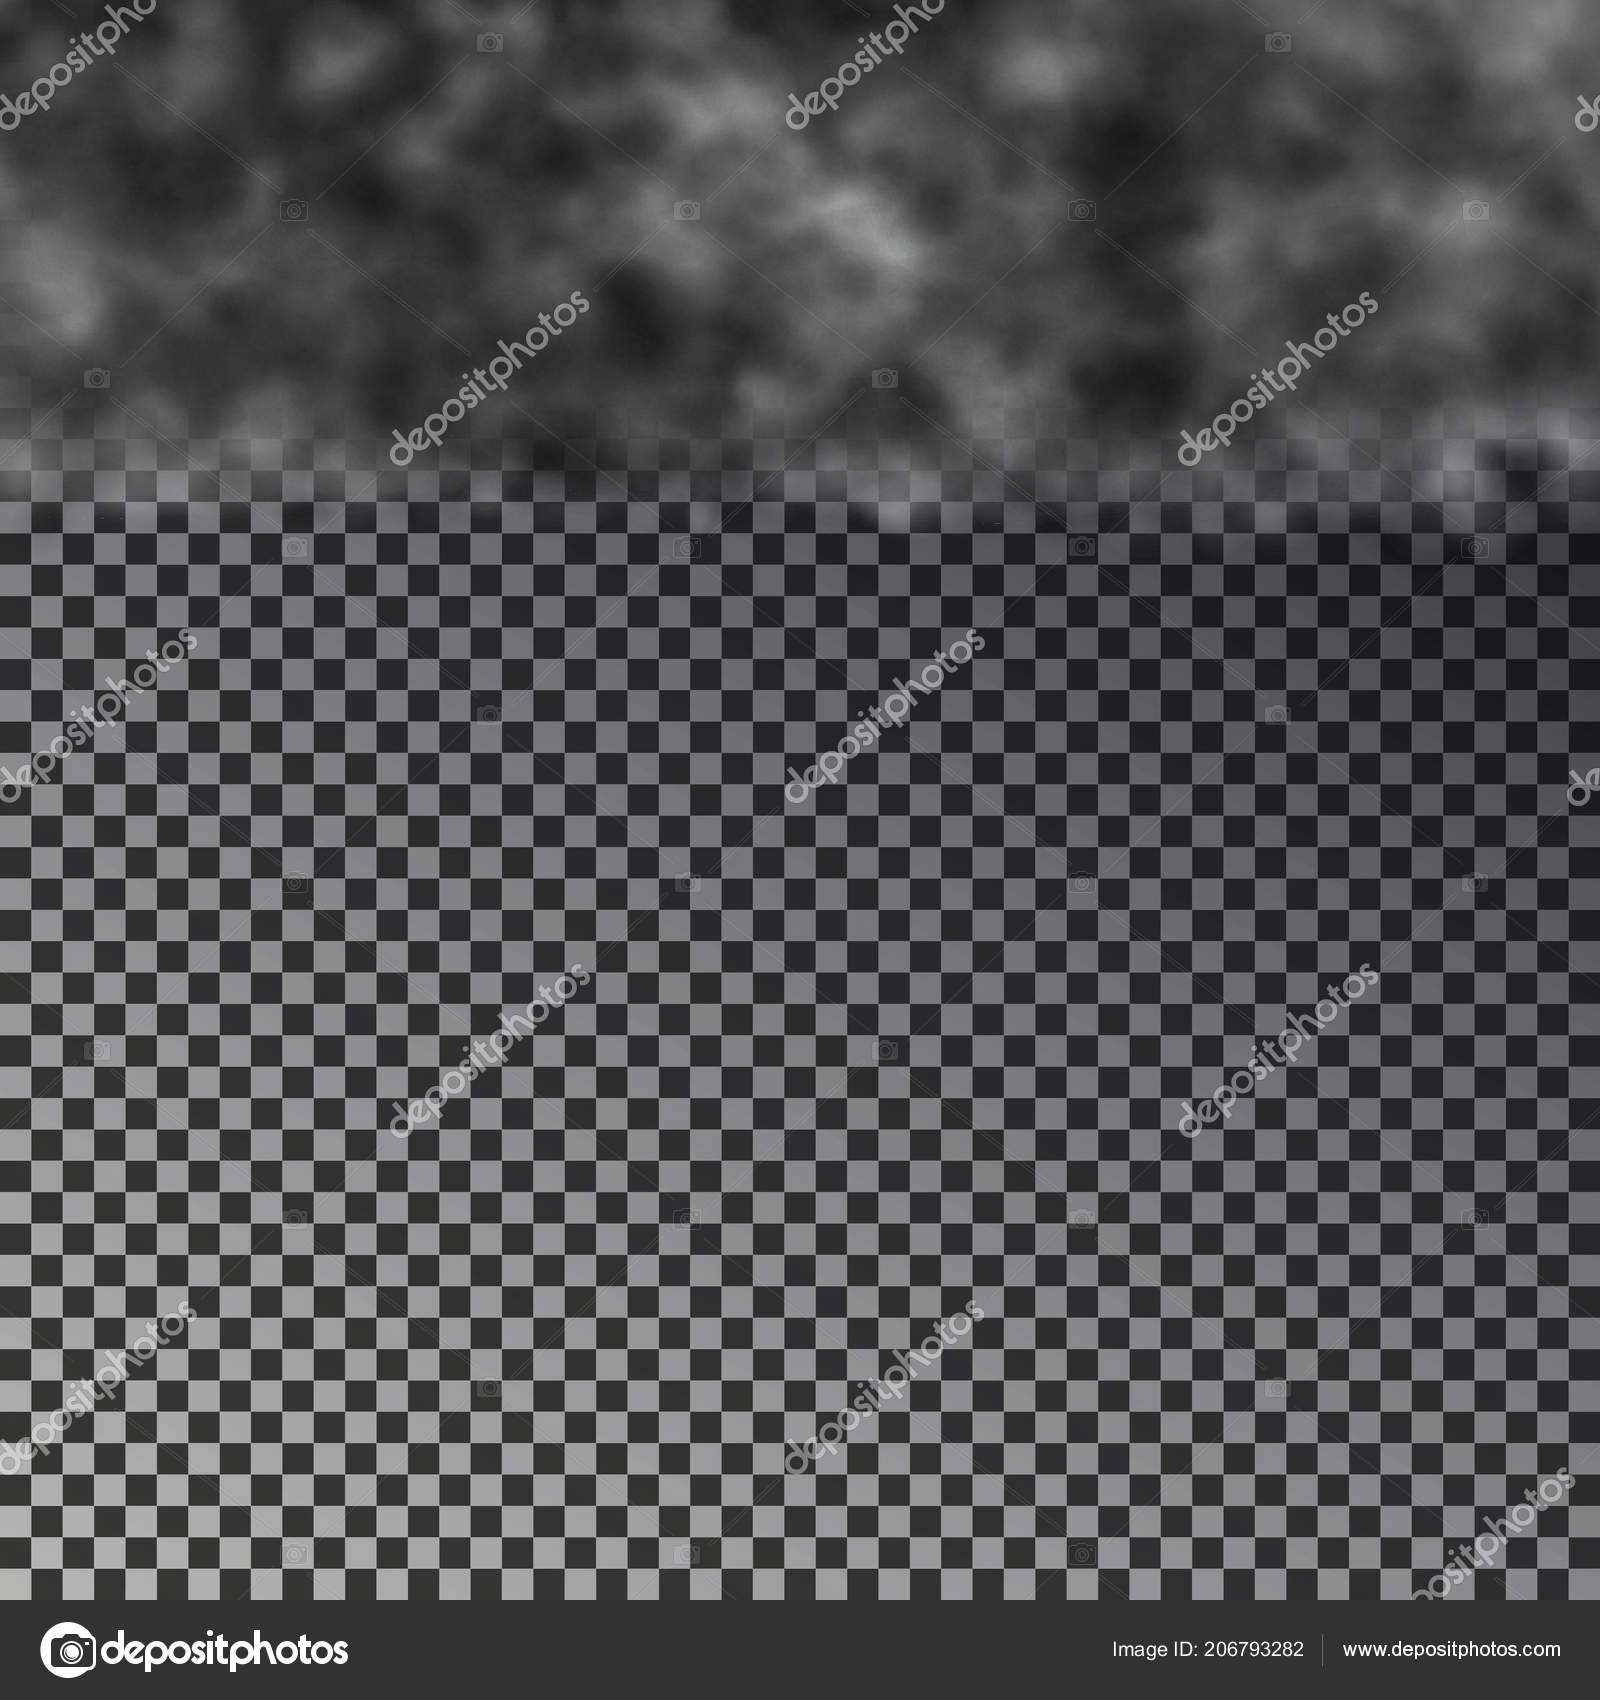 dark cloud on top isolated on checkered background transparent